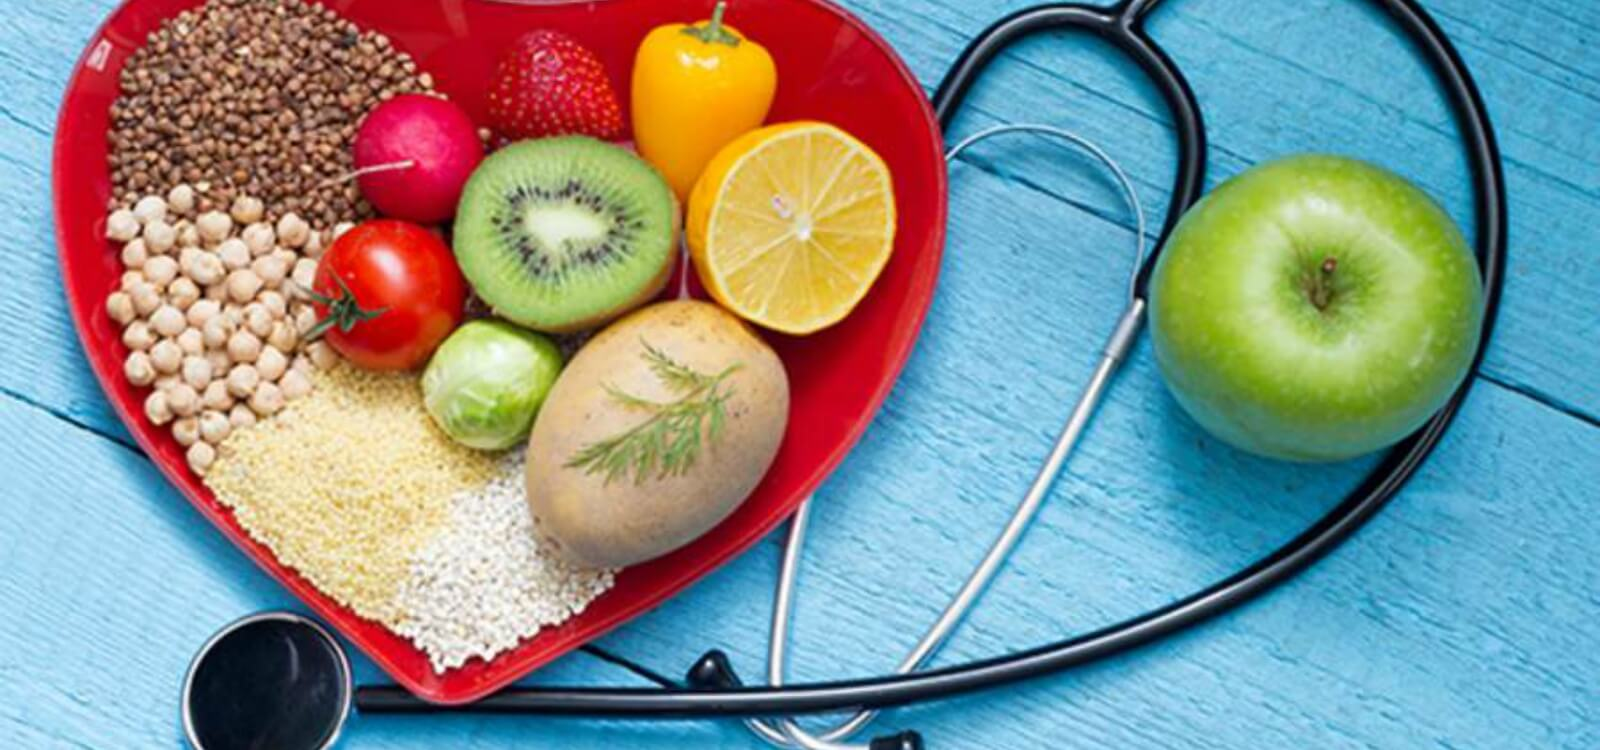 mediterranean diet and heart disease